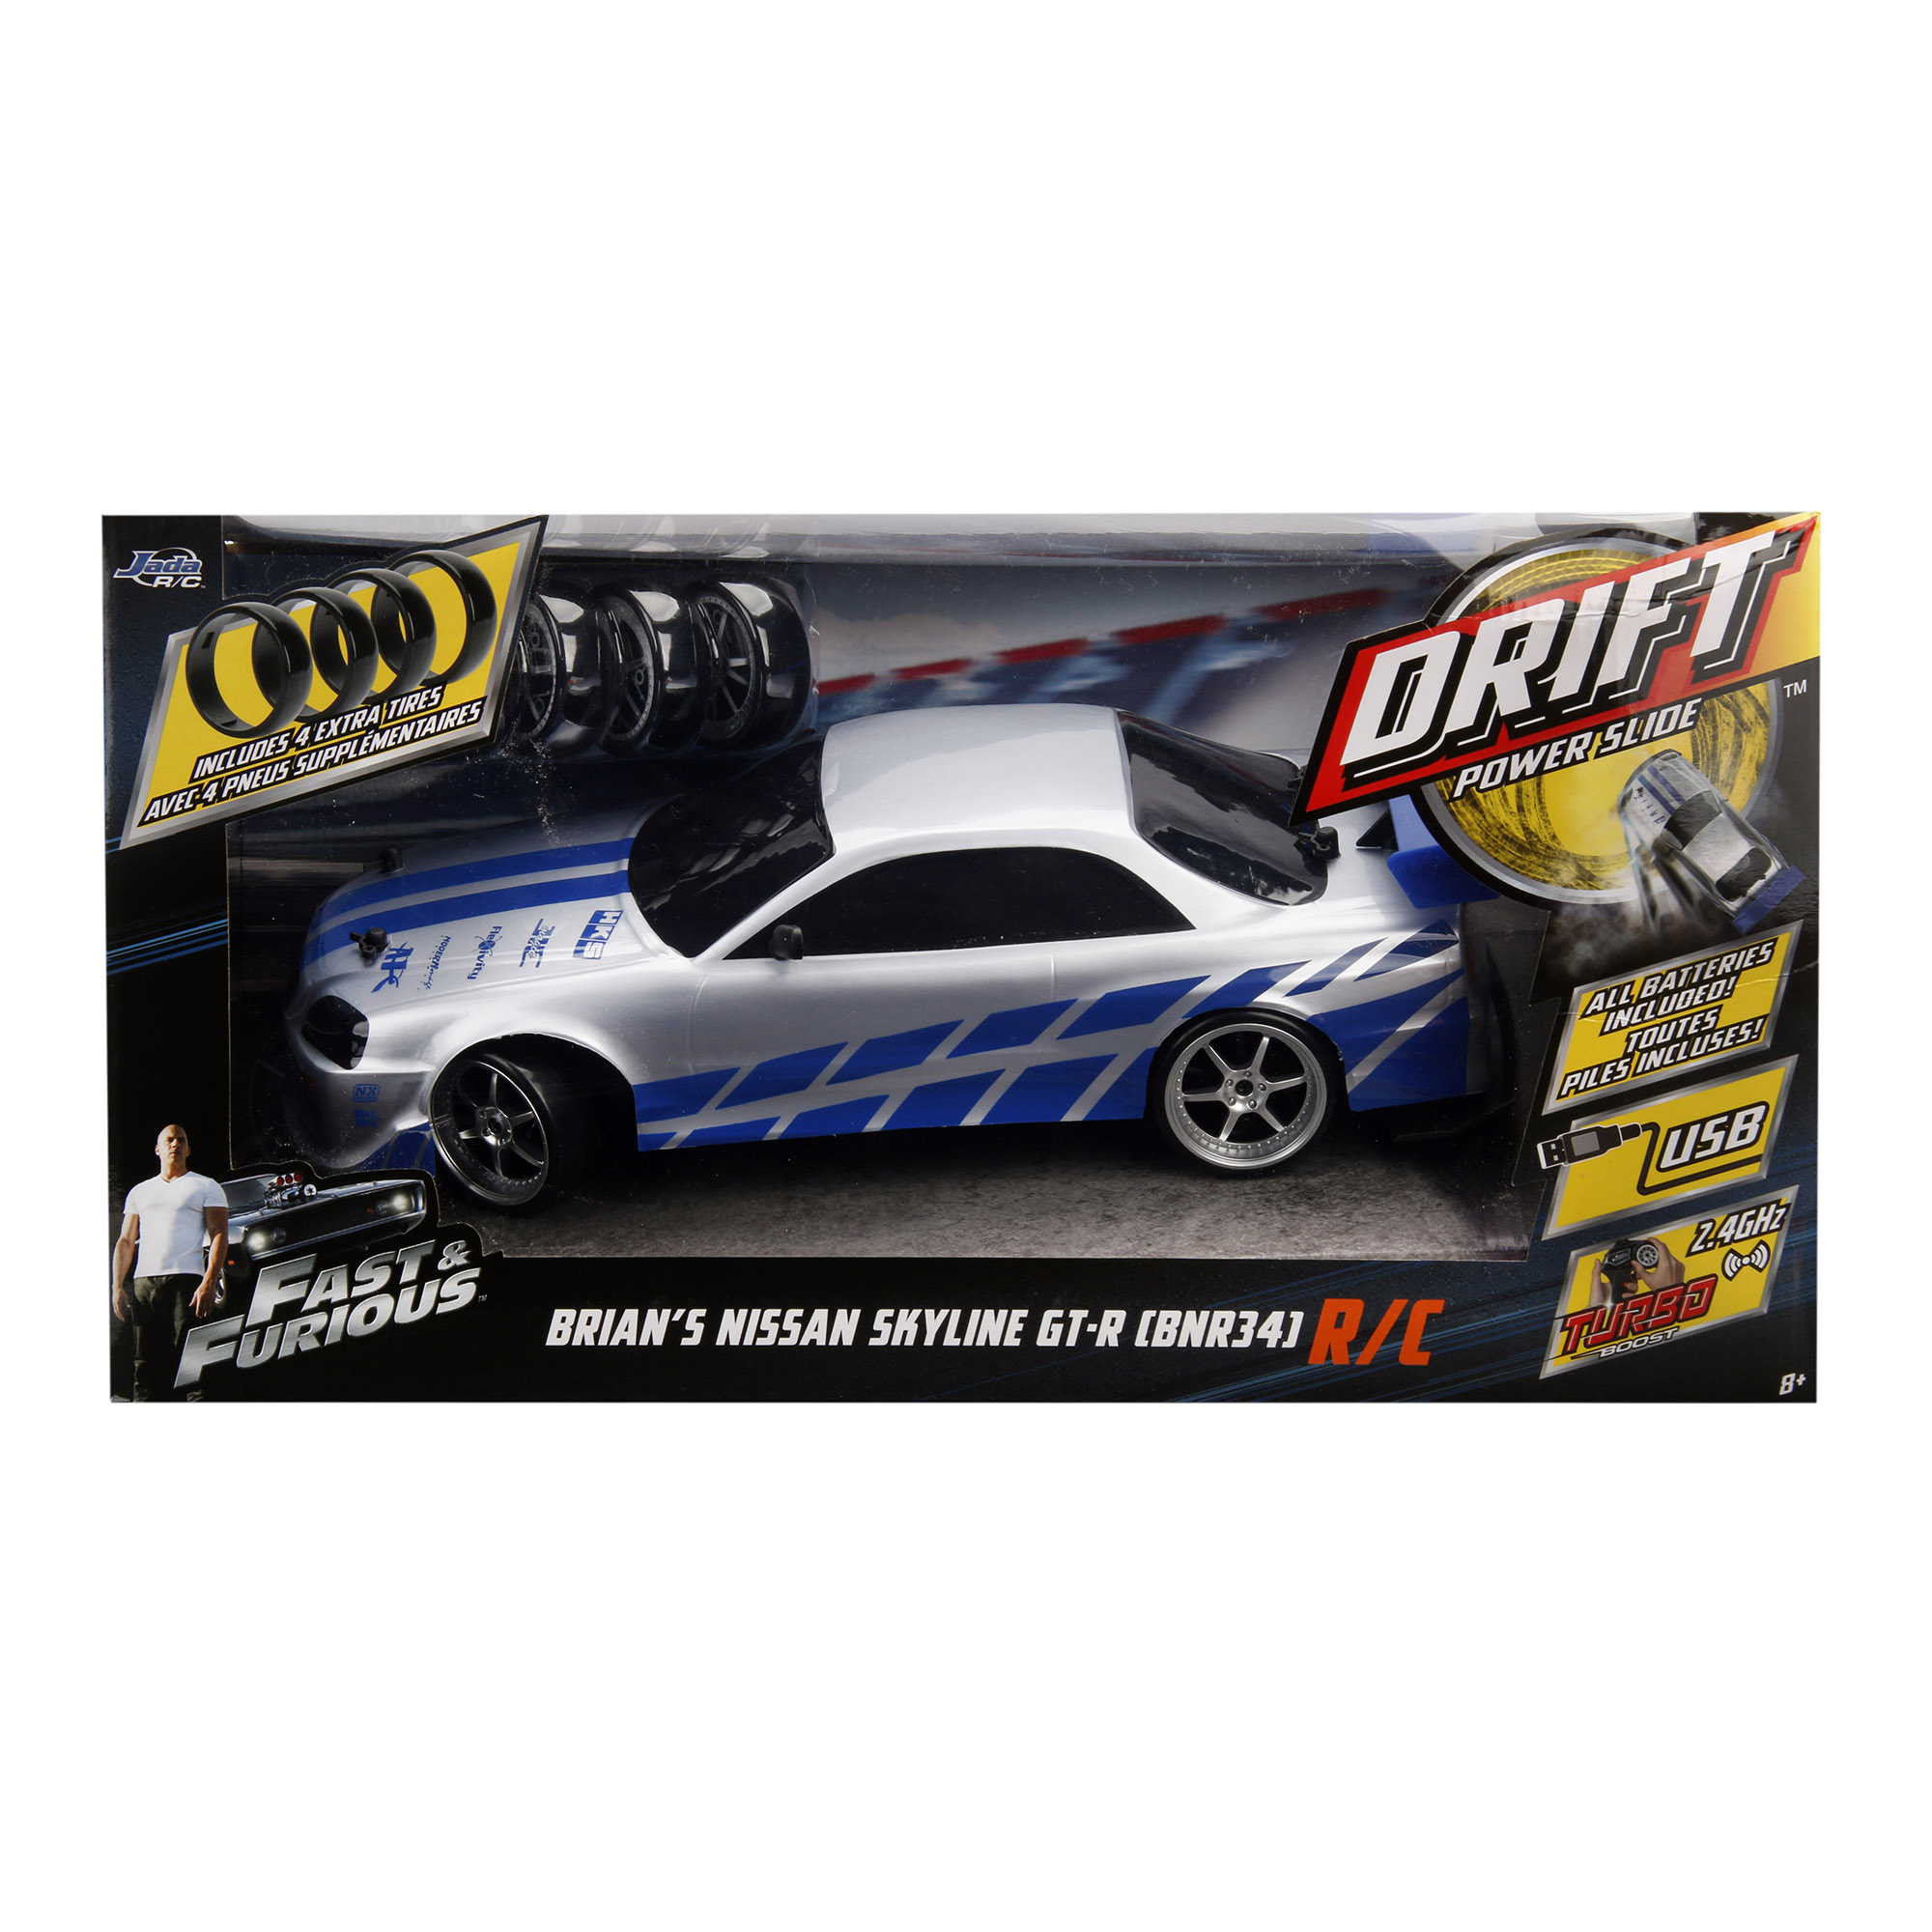 Jada Toys - Fast and Furious 1:10 Drift R/C- Nissan Skyline